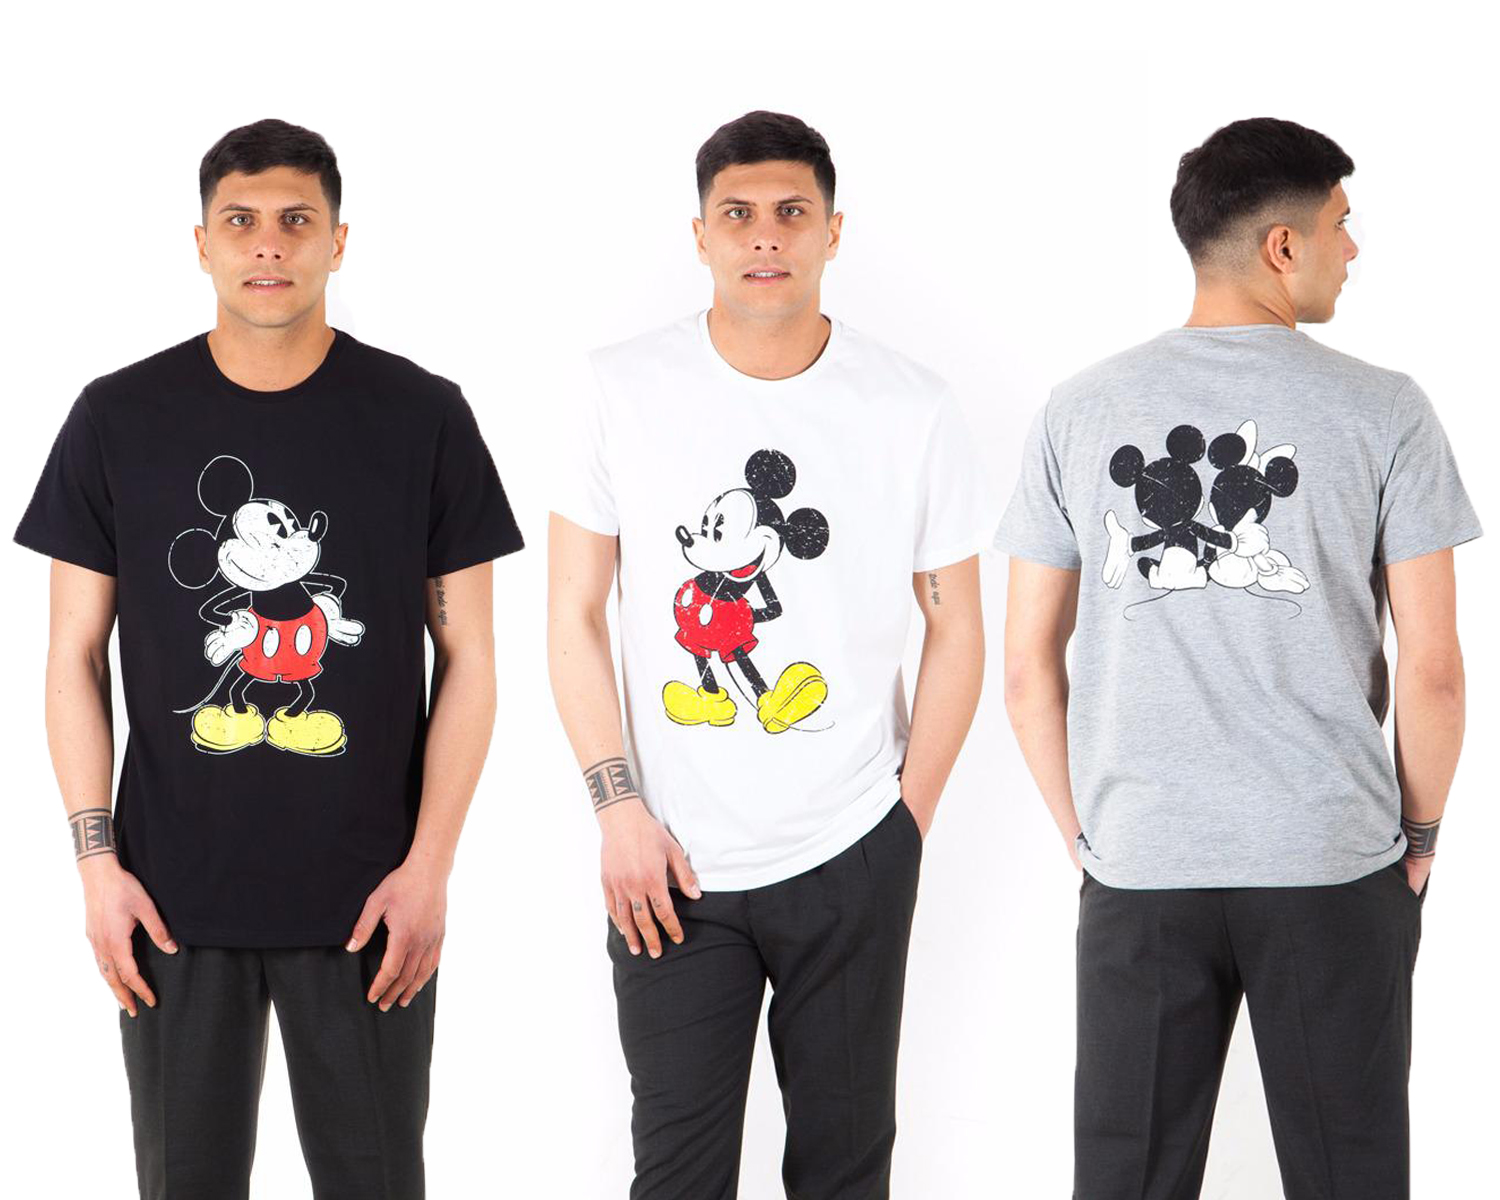 Set lot kit of three t-shirts t-shirts disney-half sleeves mickey mouse three-color